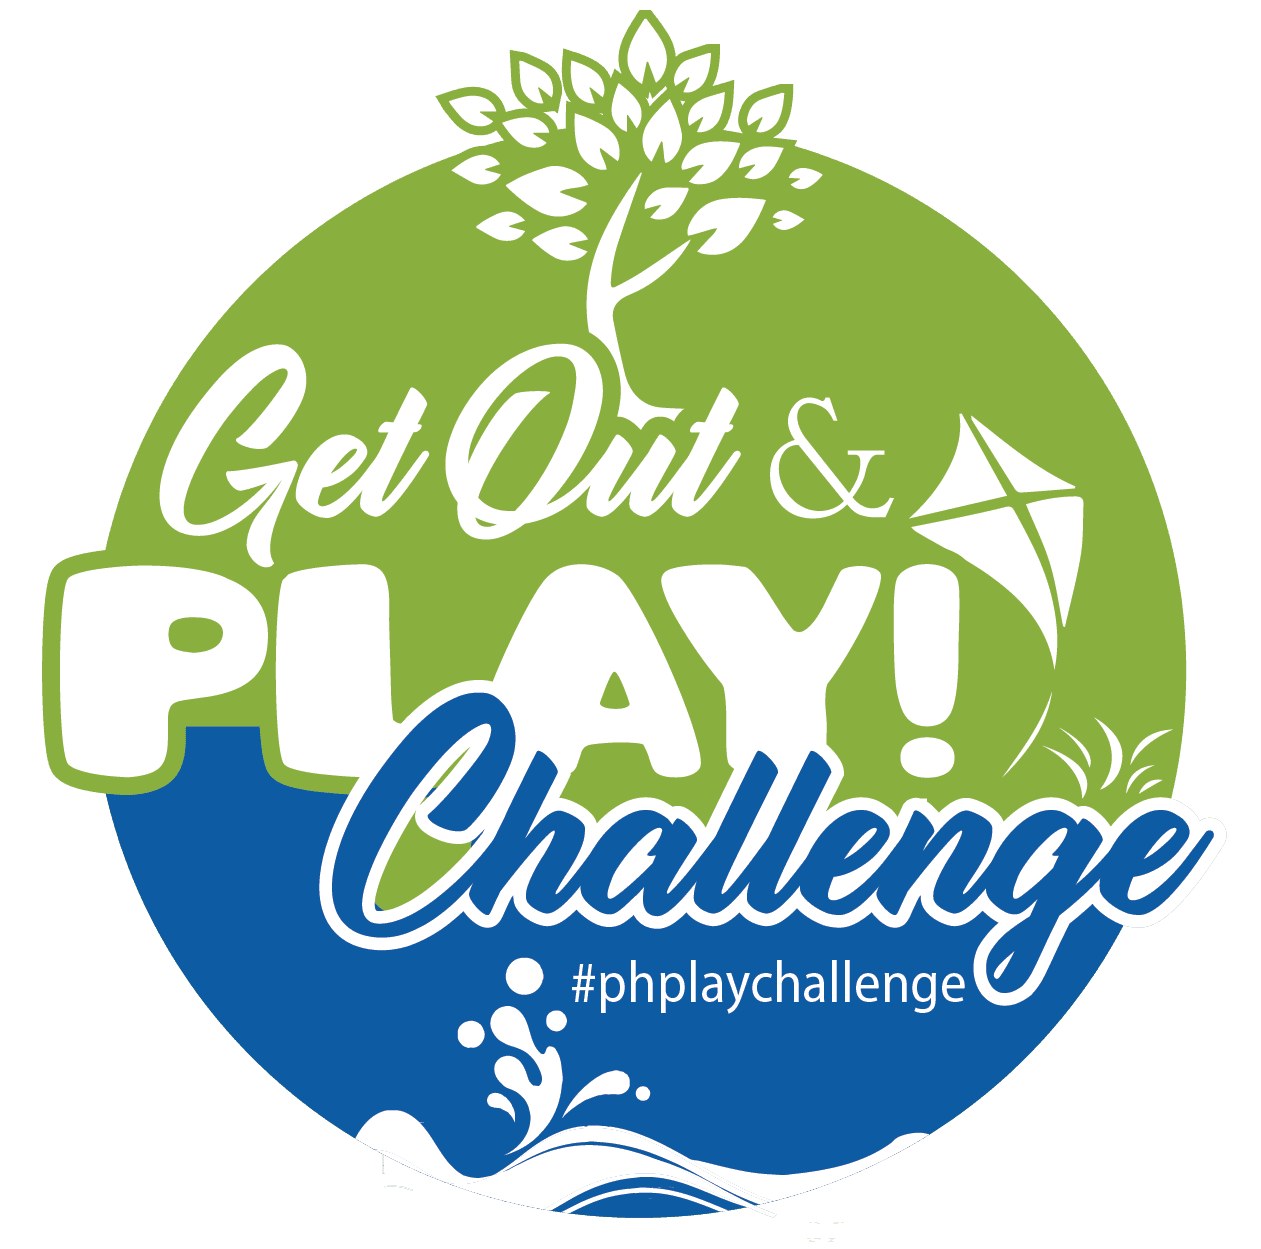 Get Out & Play Challenge